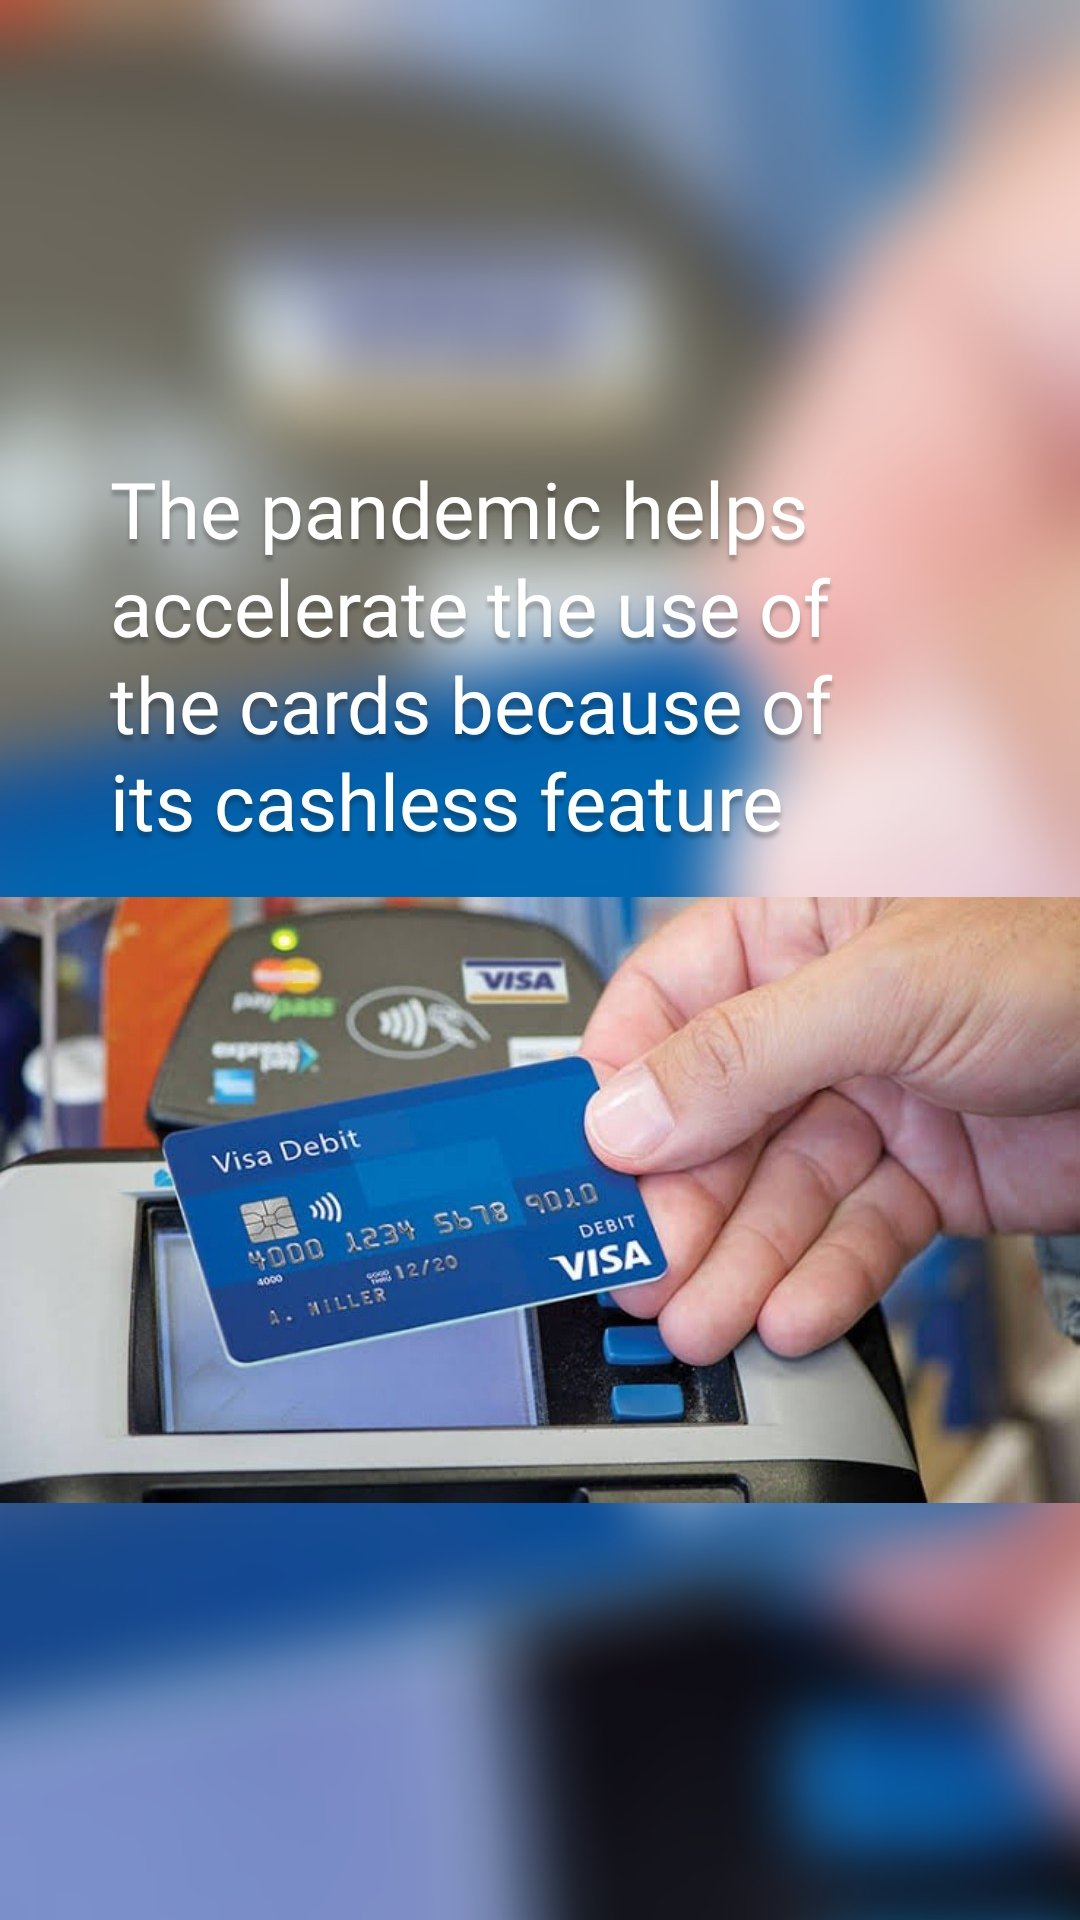 The pandemic helps accelerate the use of the cards because of its cashless feature